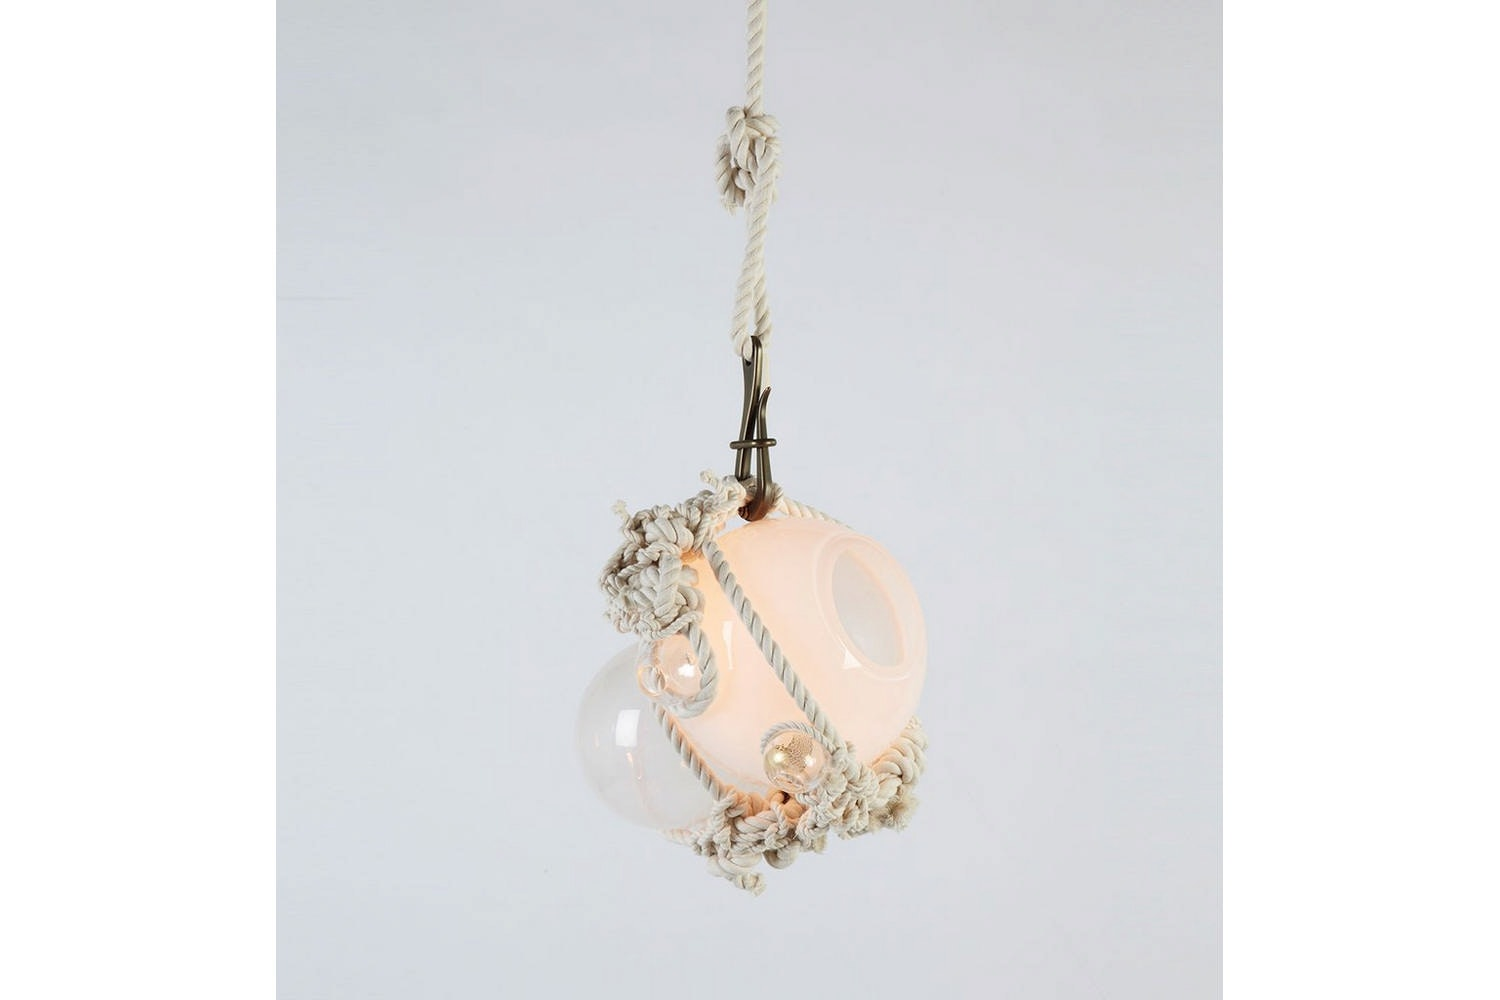 Knotty Bubbles Pendant Suspension Lamp by Adams Adelman for Roll & Hill